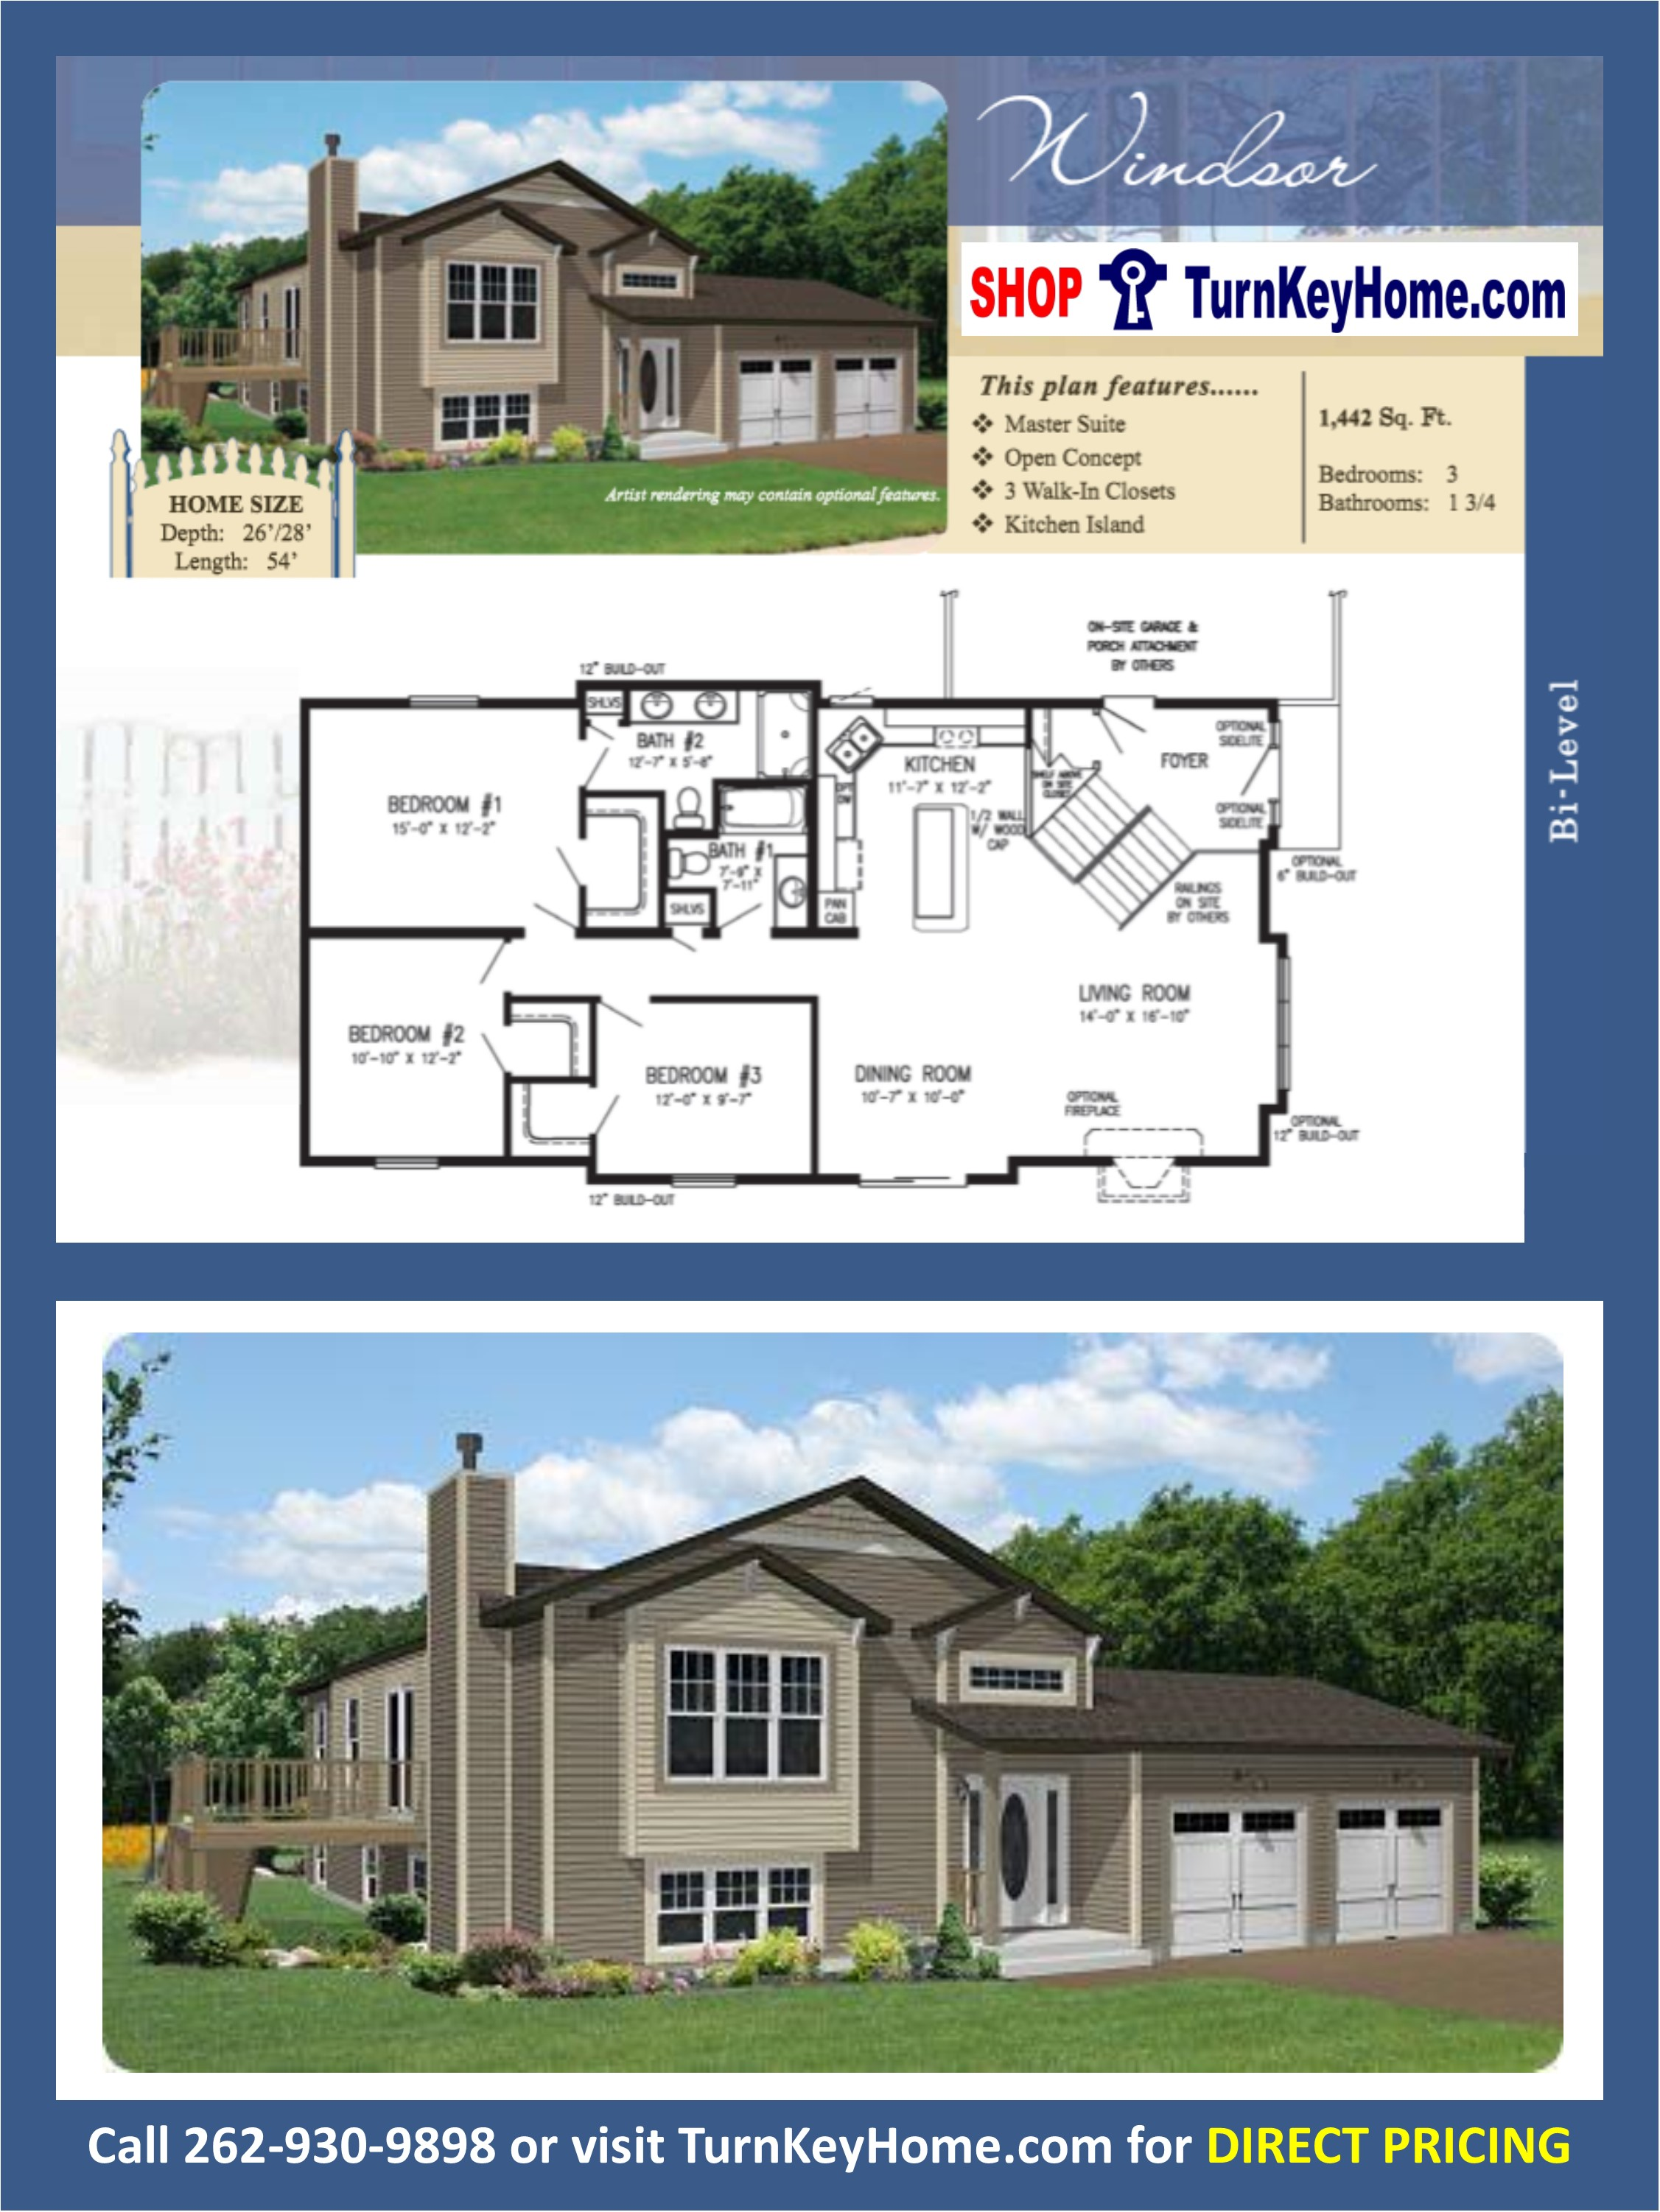 WINDSOR Bi-Level Home 3 Bed 1.75 Bath Plan 1442 SF Priced From ...